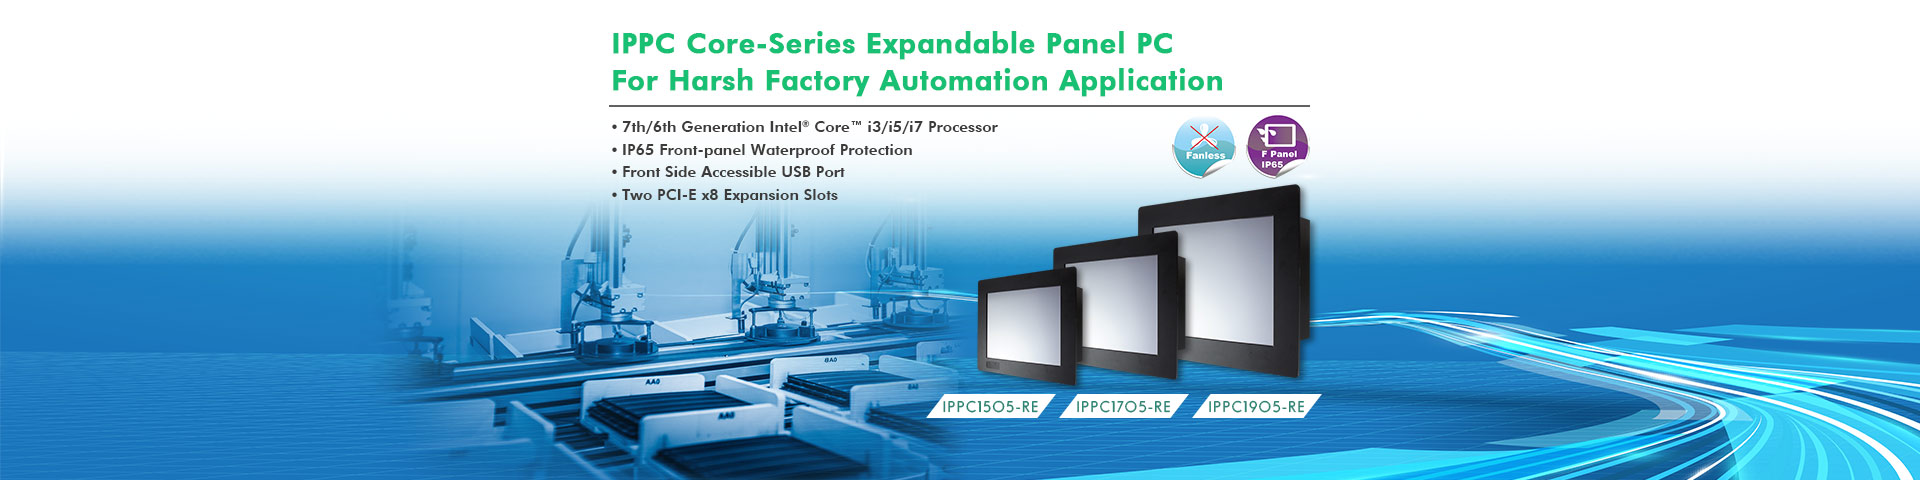 Expandable Panel PCs for Harsh Factory Automation Applications